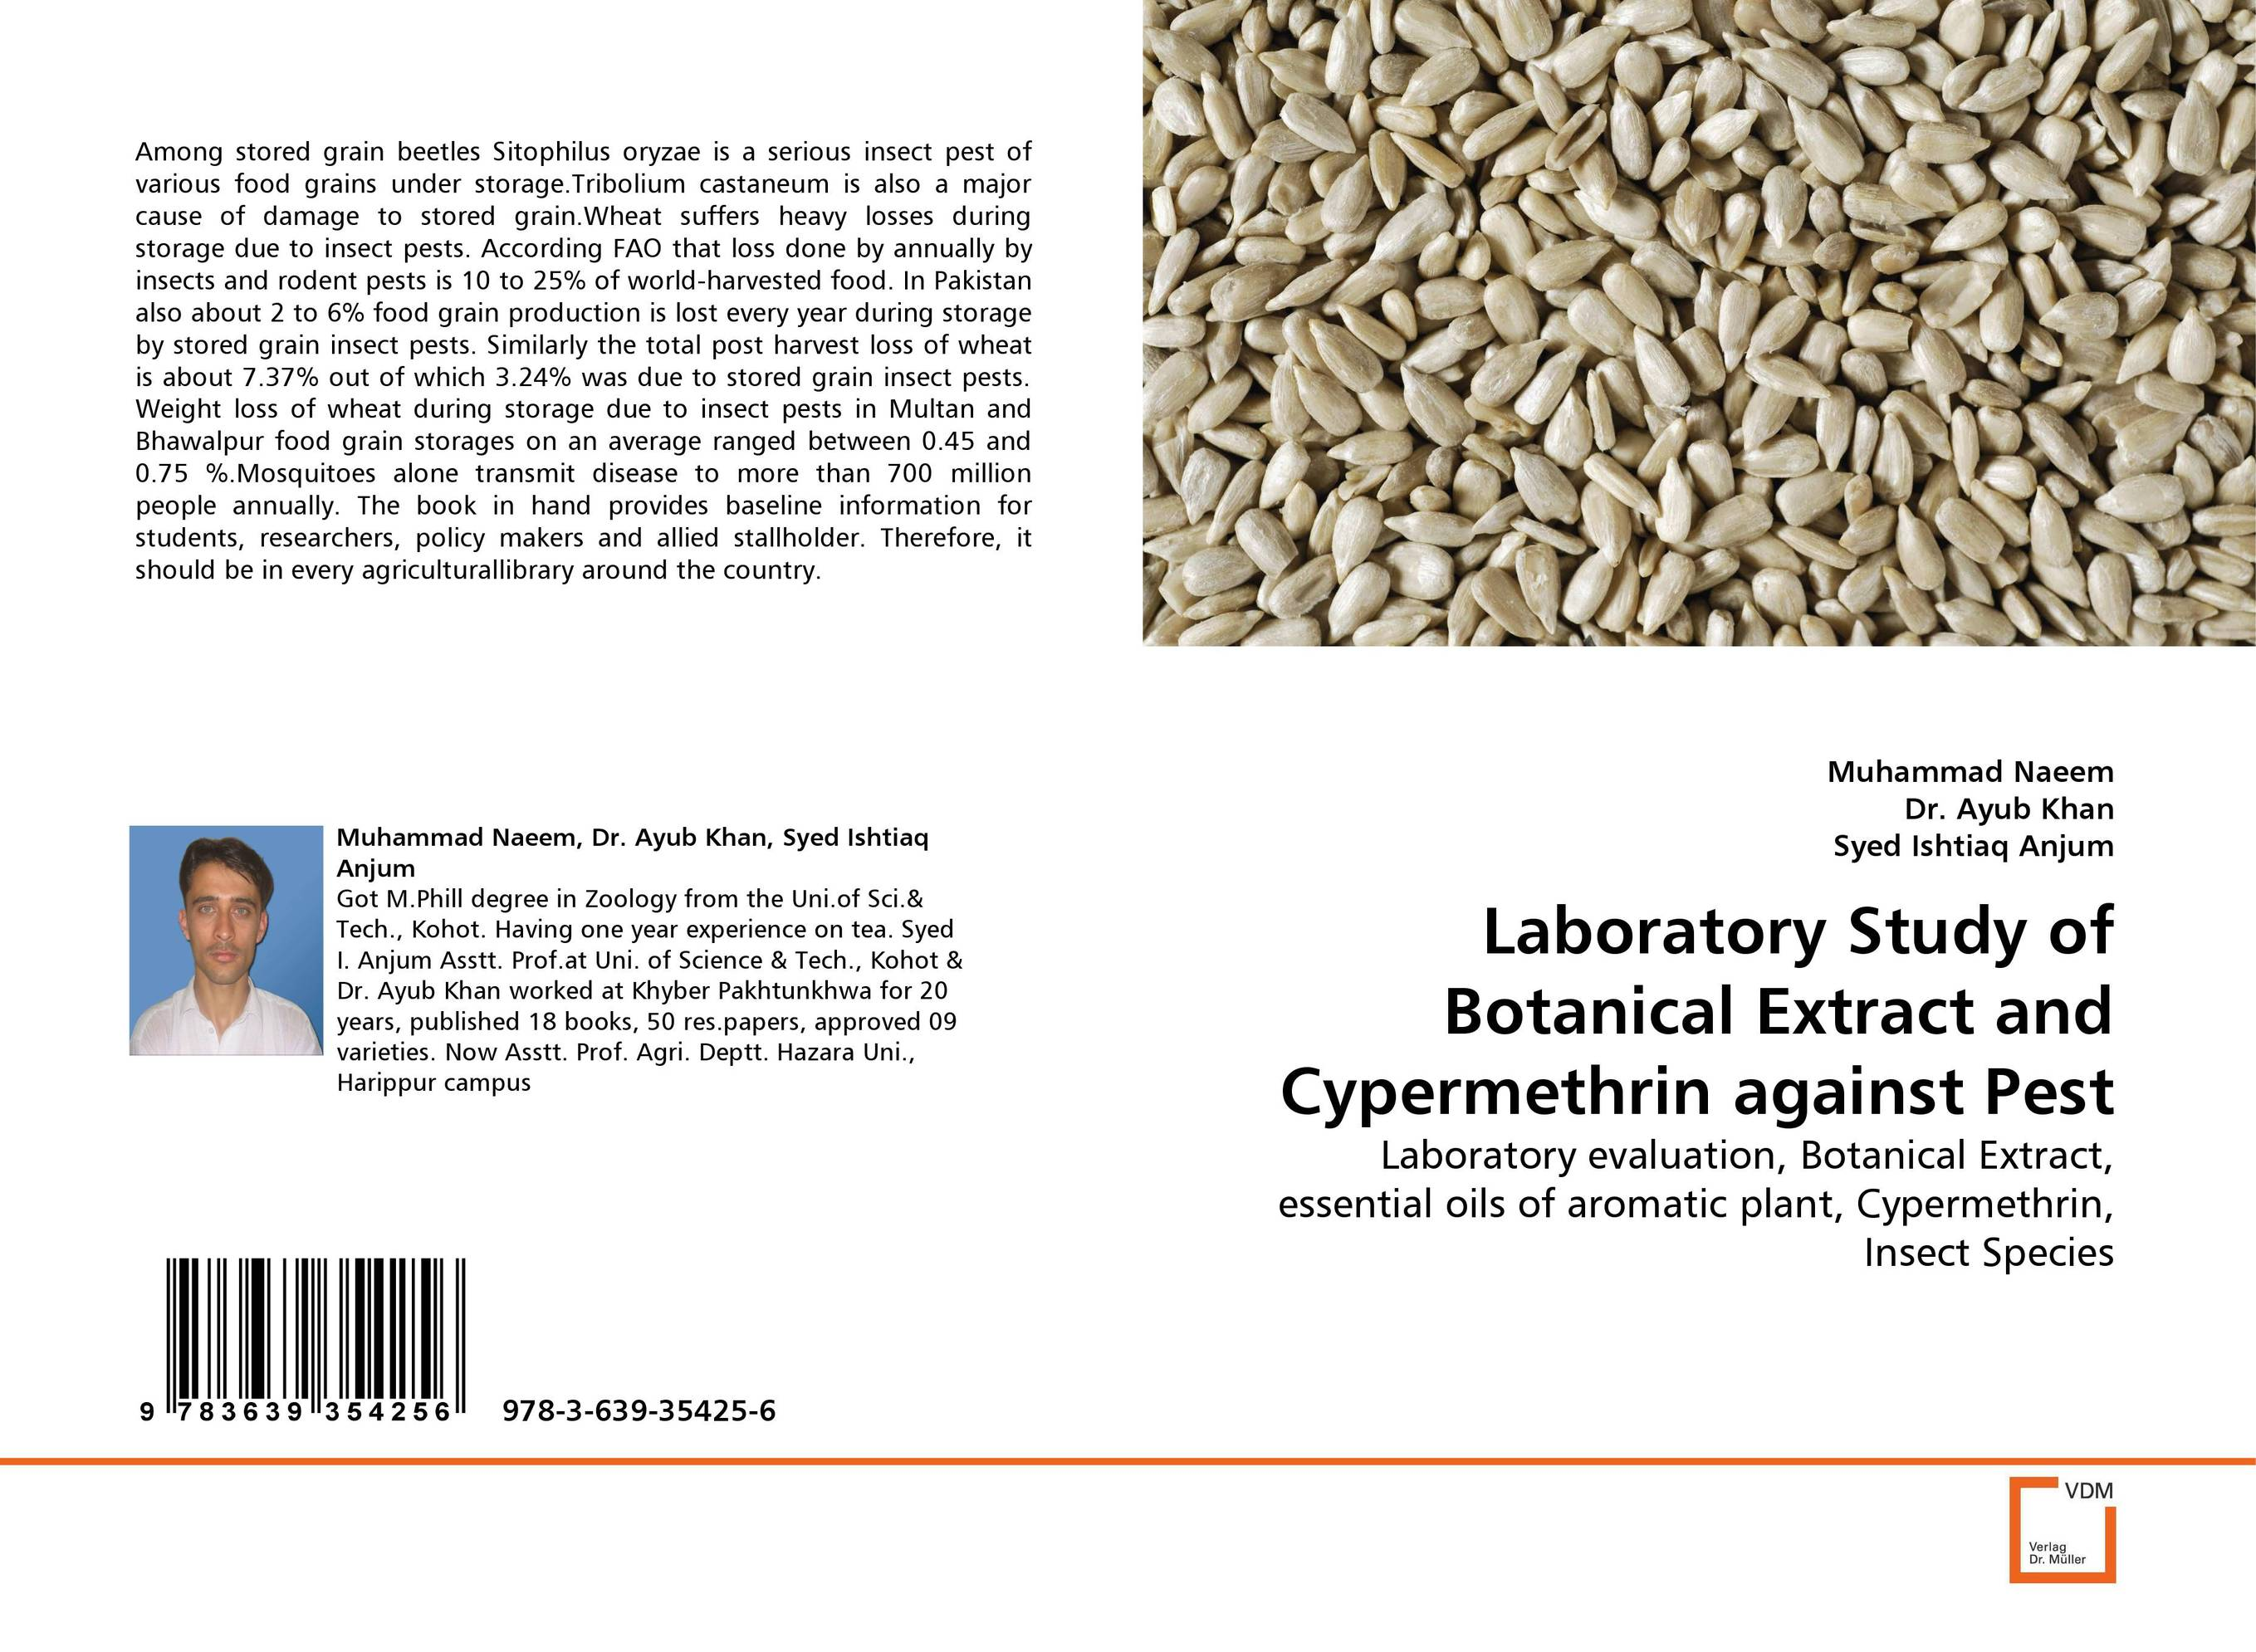 Laboratory Study of Botanical Extract and Cypermethrin against Pest devices for detection and management of stored grain insects